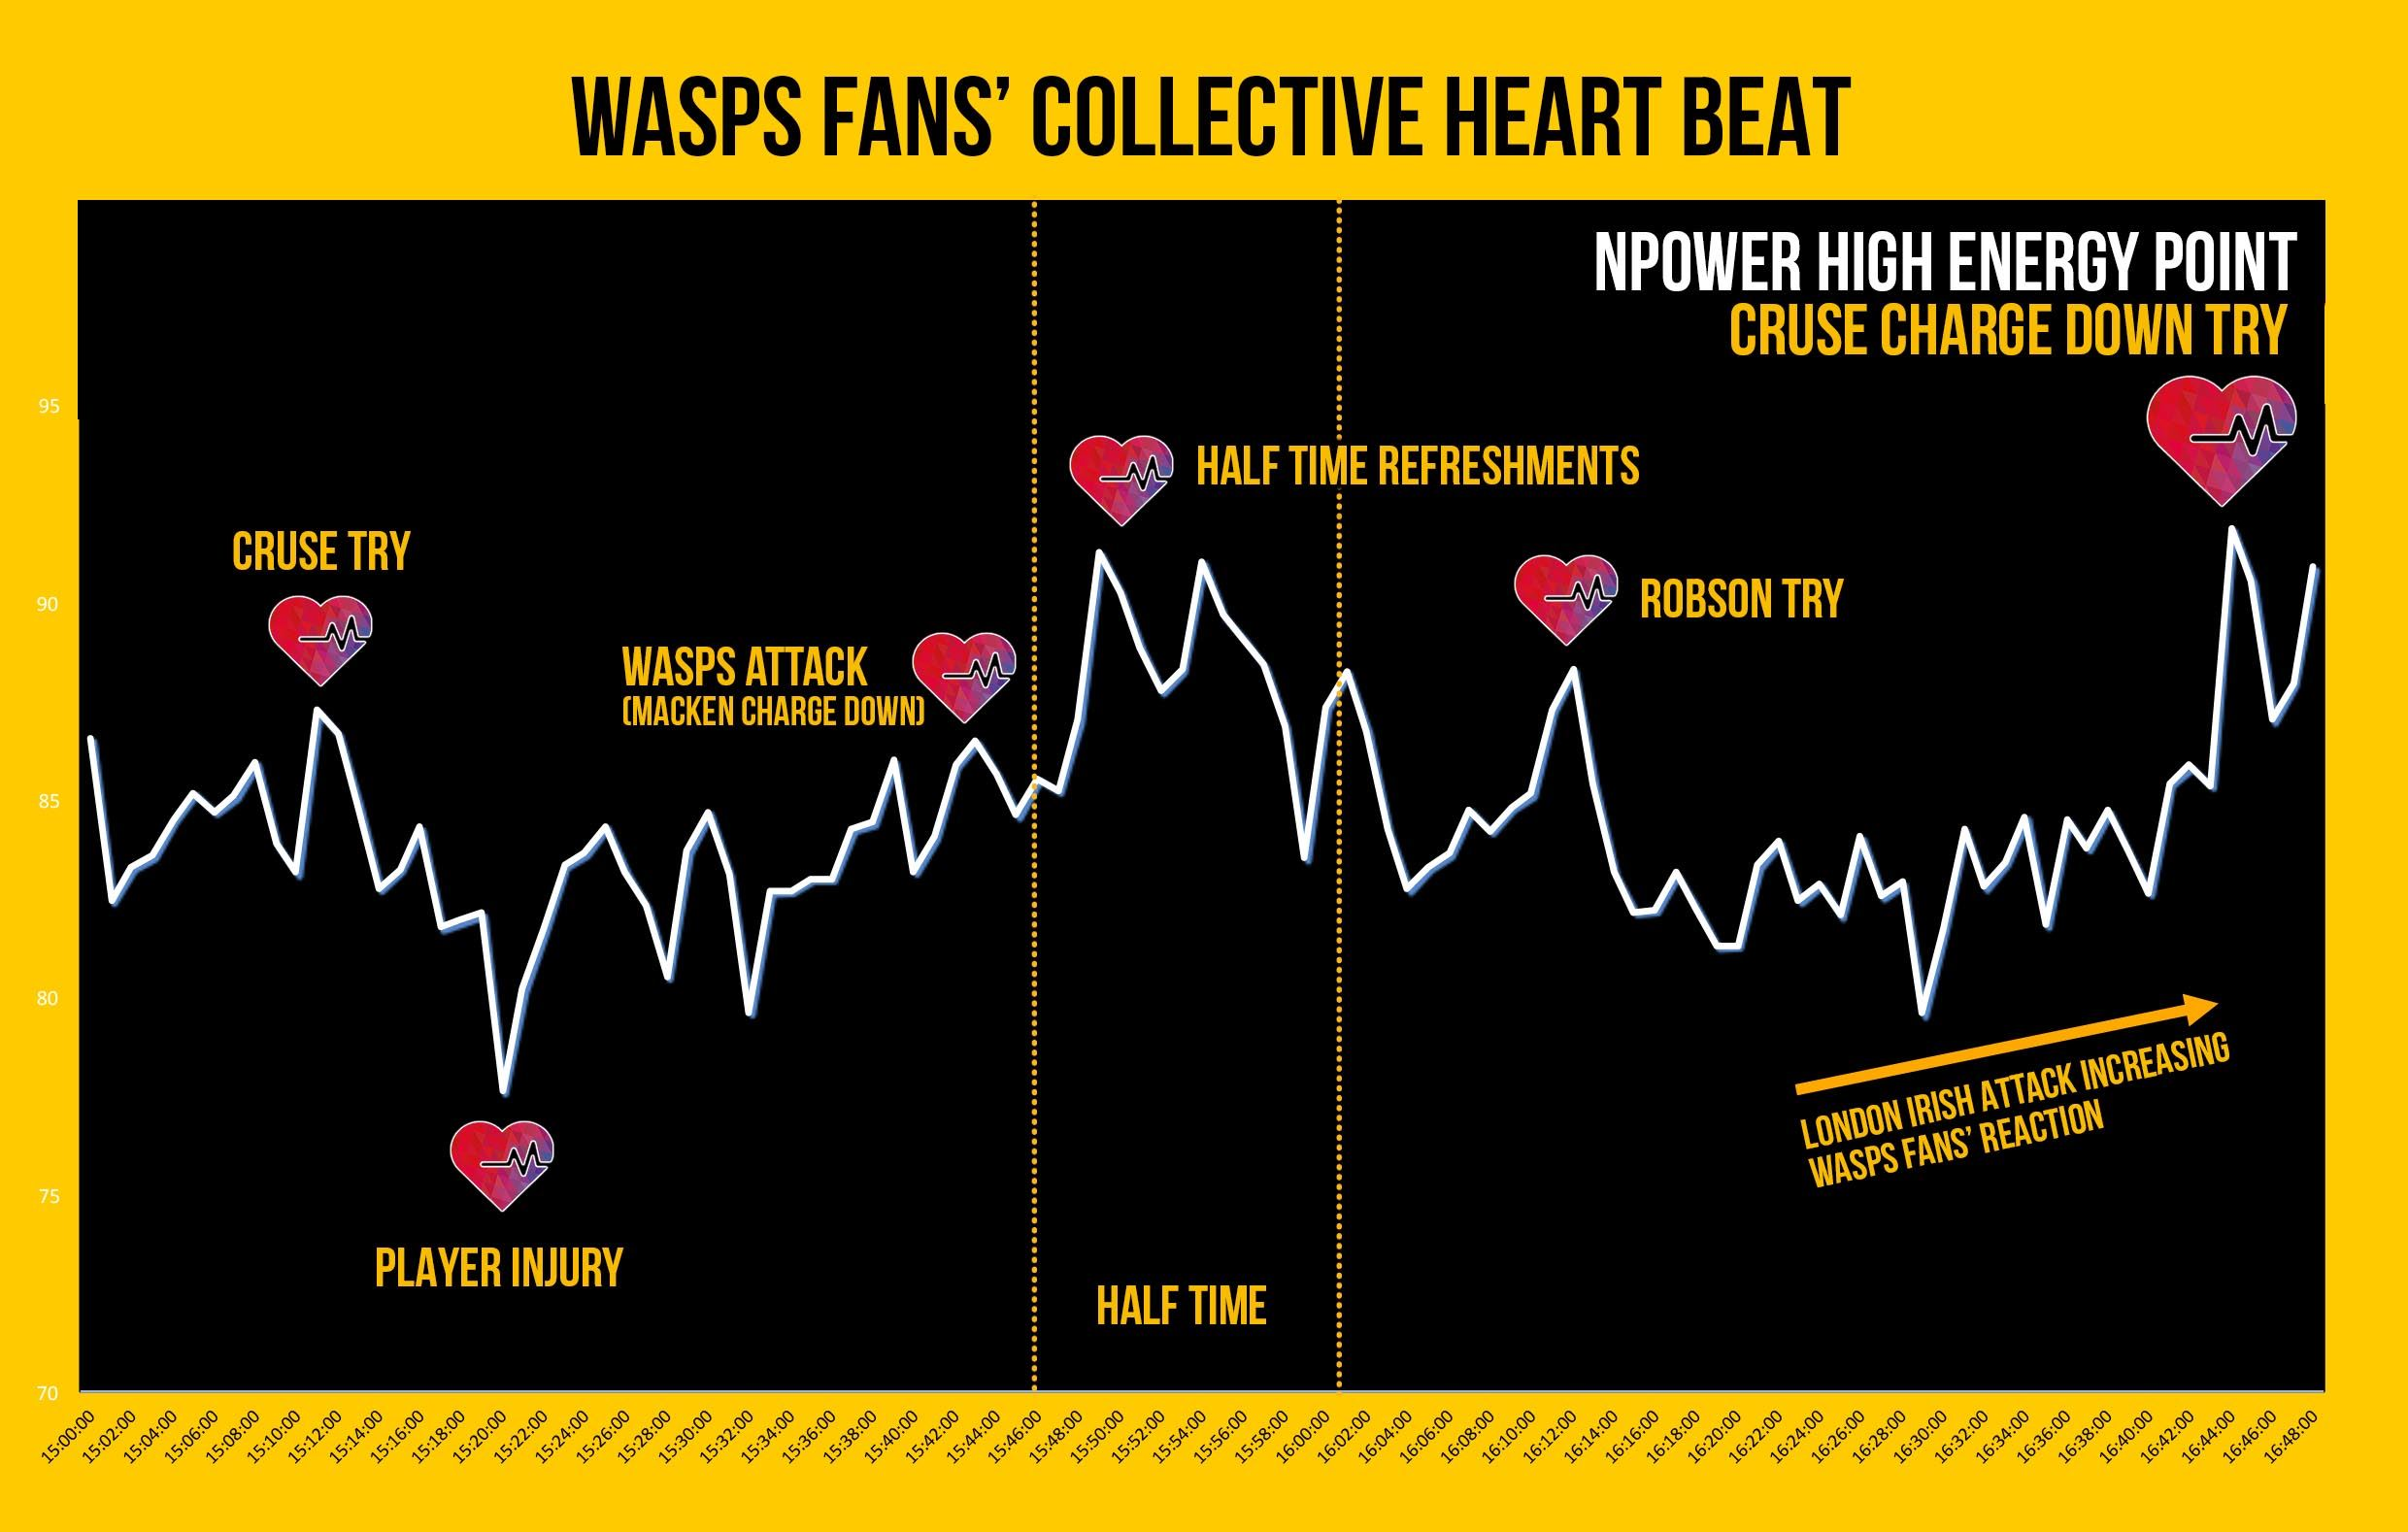 Wasps Fans' collective heart beat